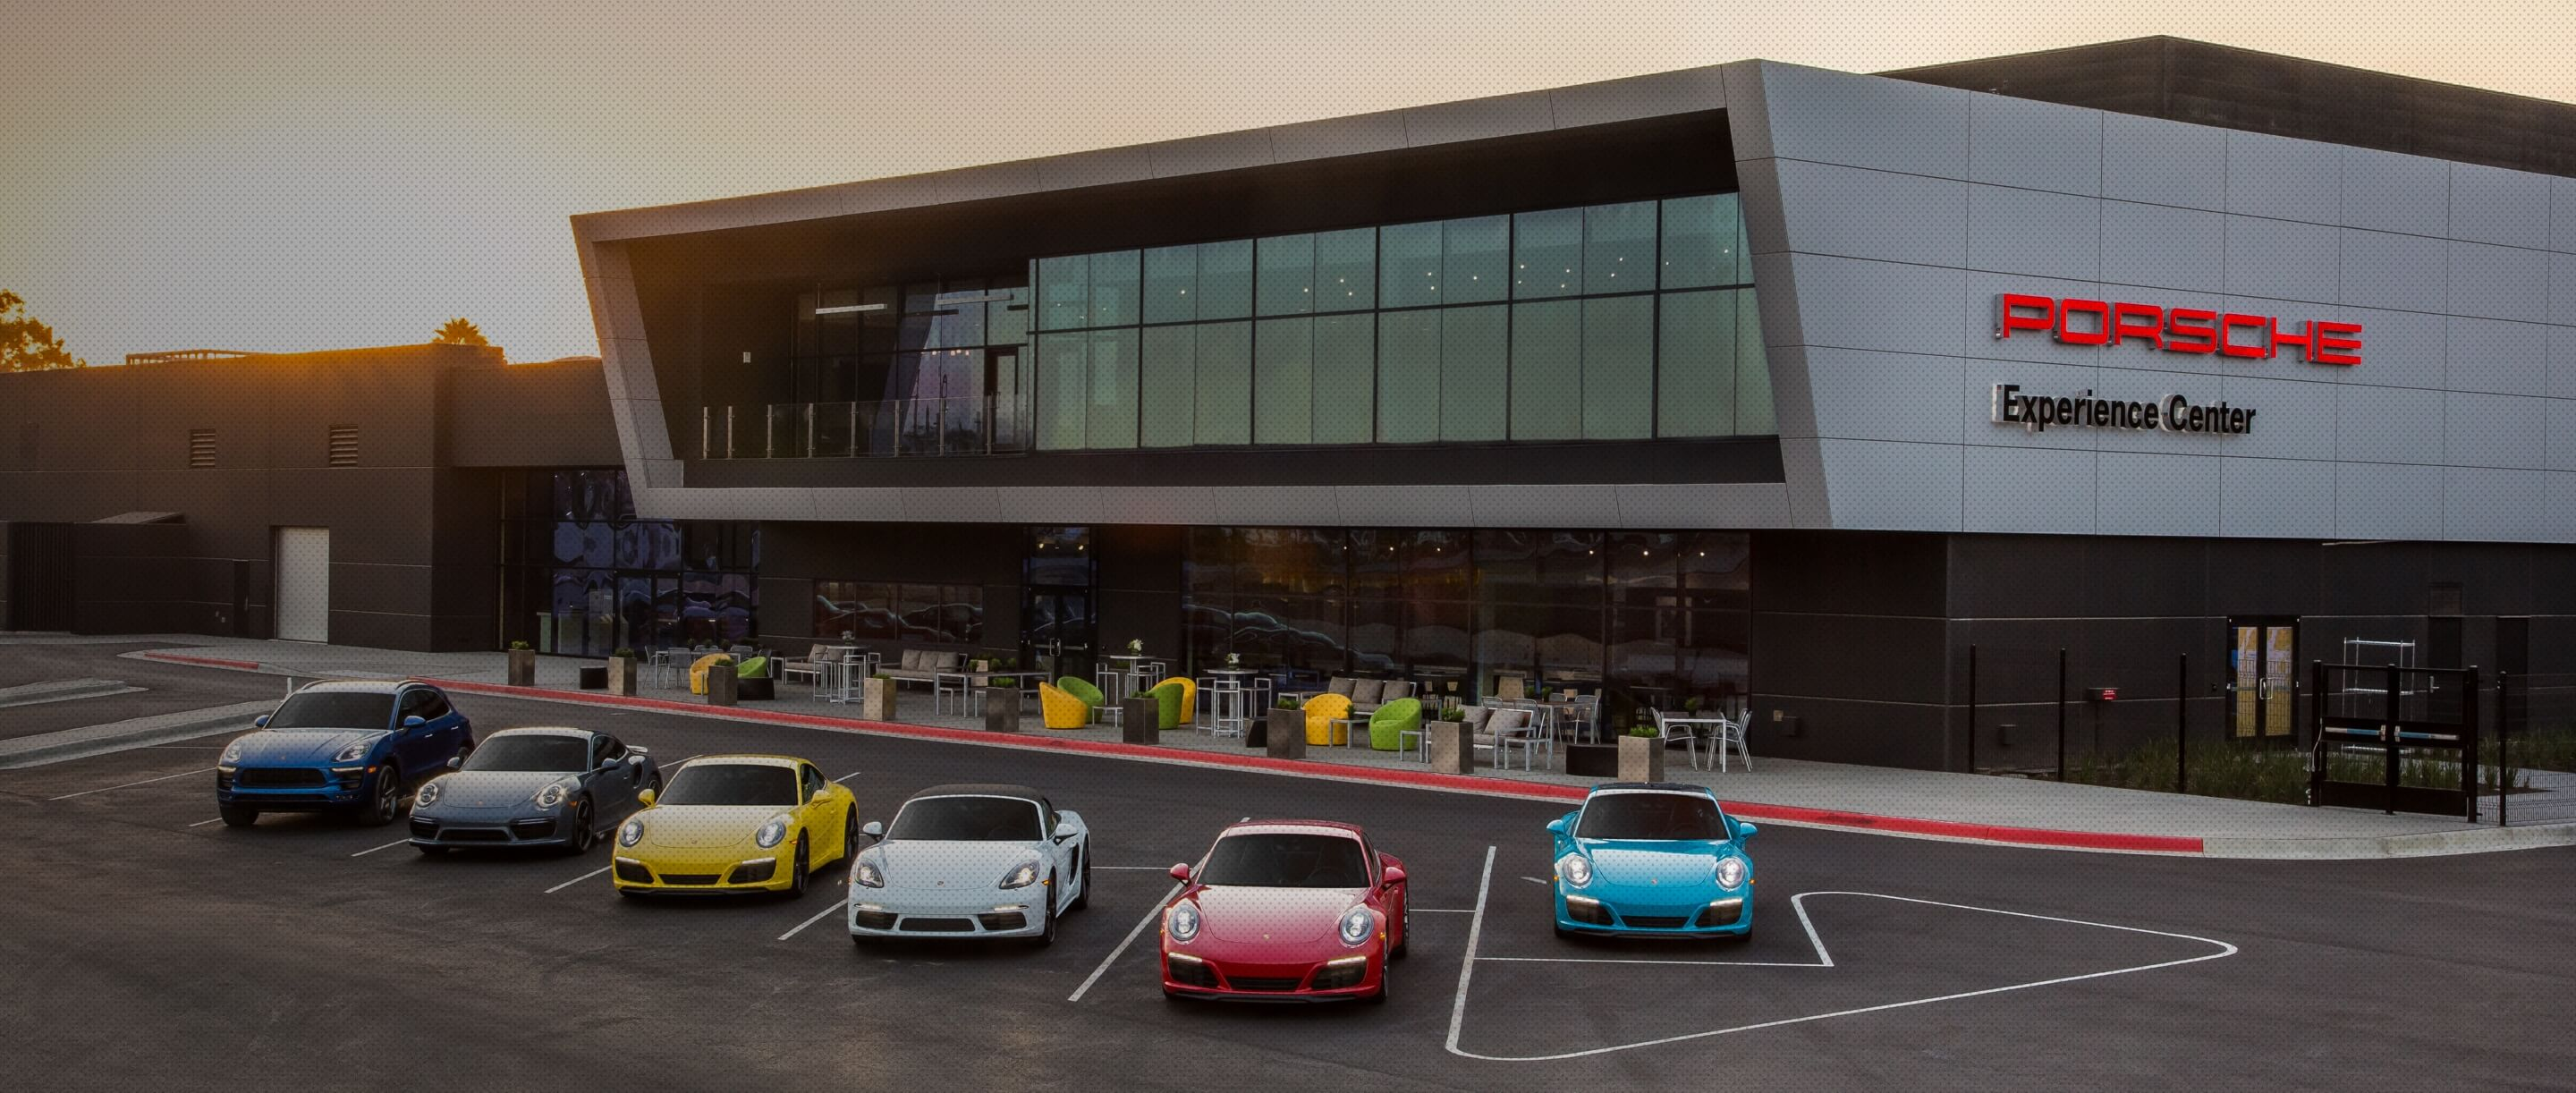 Porsche Experience Center Los Angeles Facilities and Venue header desktop